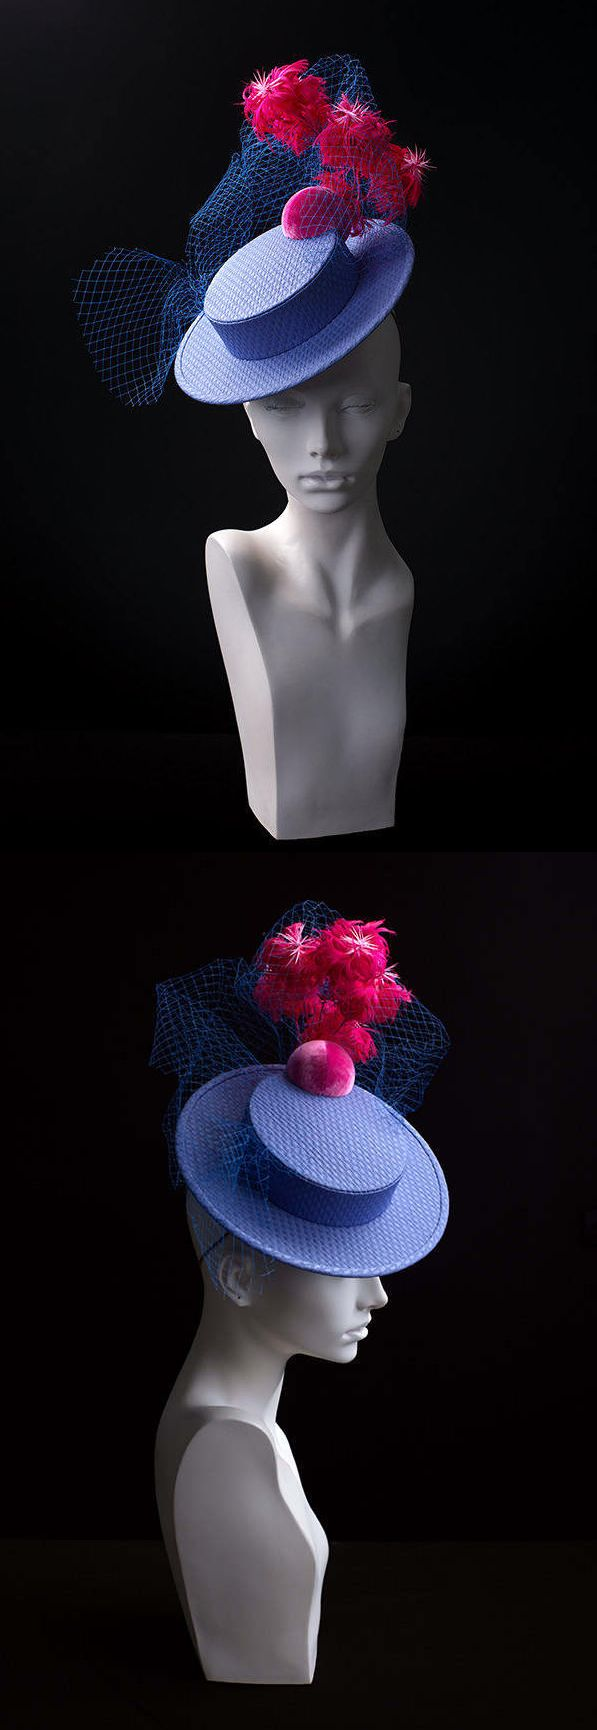 """""""Sunrise in the ocean"""" couture boater from """"La vie en rose"""" collection. Boater made of jacquard fabric. The plume is made of three types of feathers surrounded by a cloud of French silk veil. Raceday Fashions, Fashions on the Field, Kentucky Derby Hat. #kentuckyderby #royalascot #fashionsonthefields #boaterhat #brightfashion #affiliatelink #ascot #weddings"""